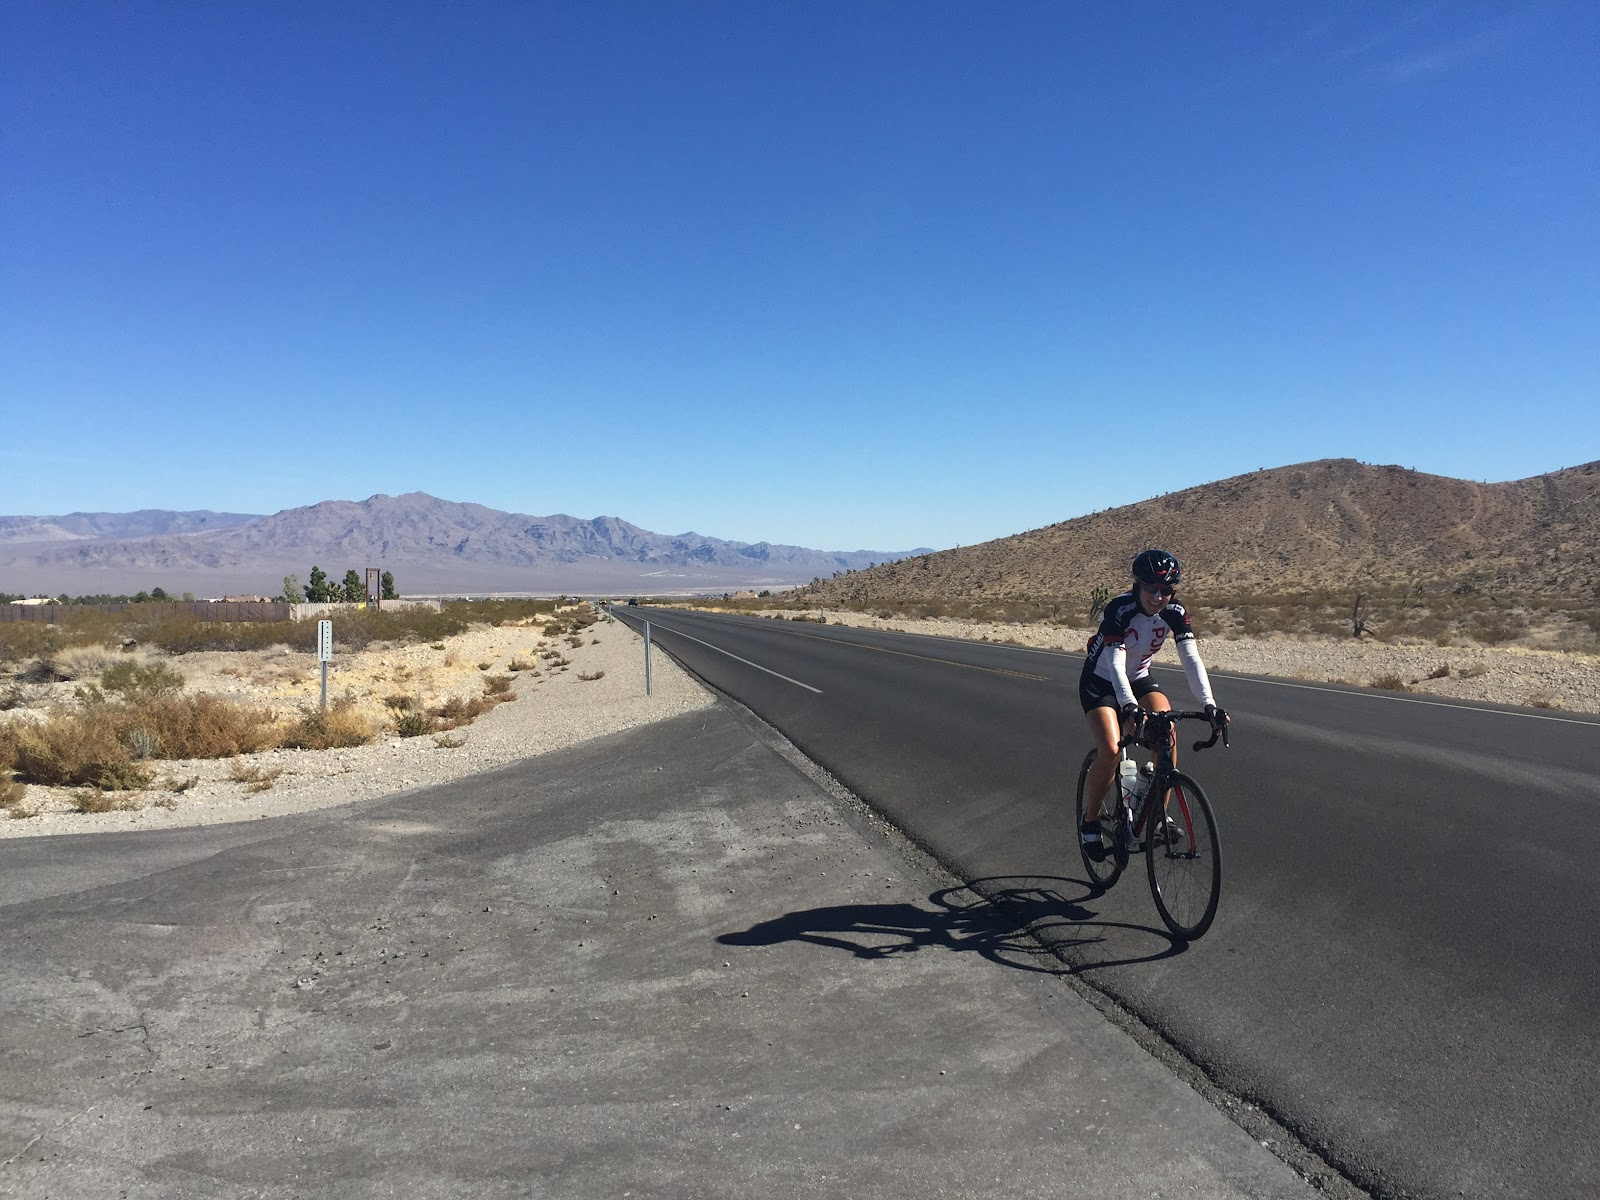 Cyclist riding bike up Kyle Canyon, Hwy 157, to Mt. Charleston.